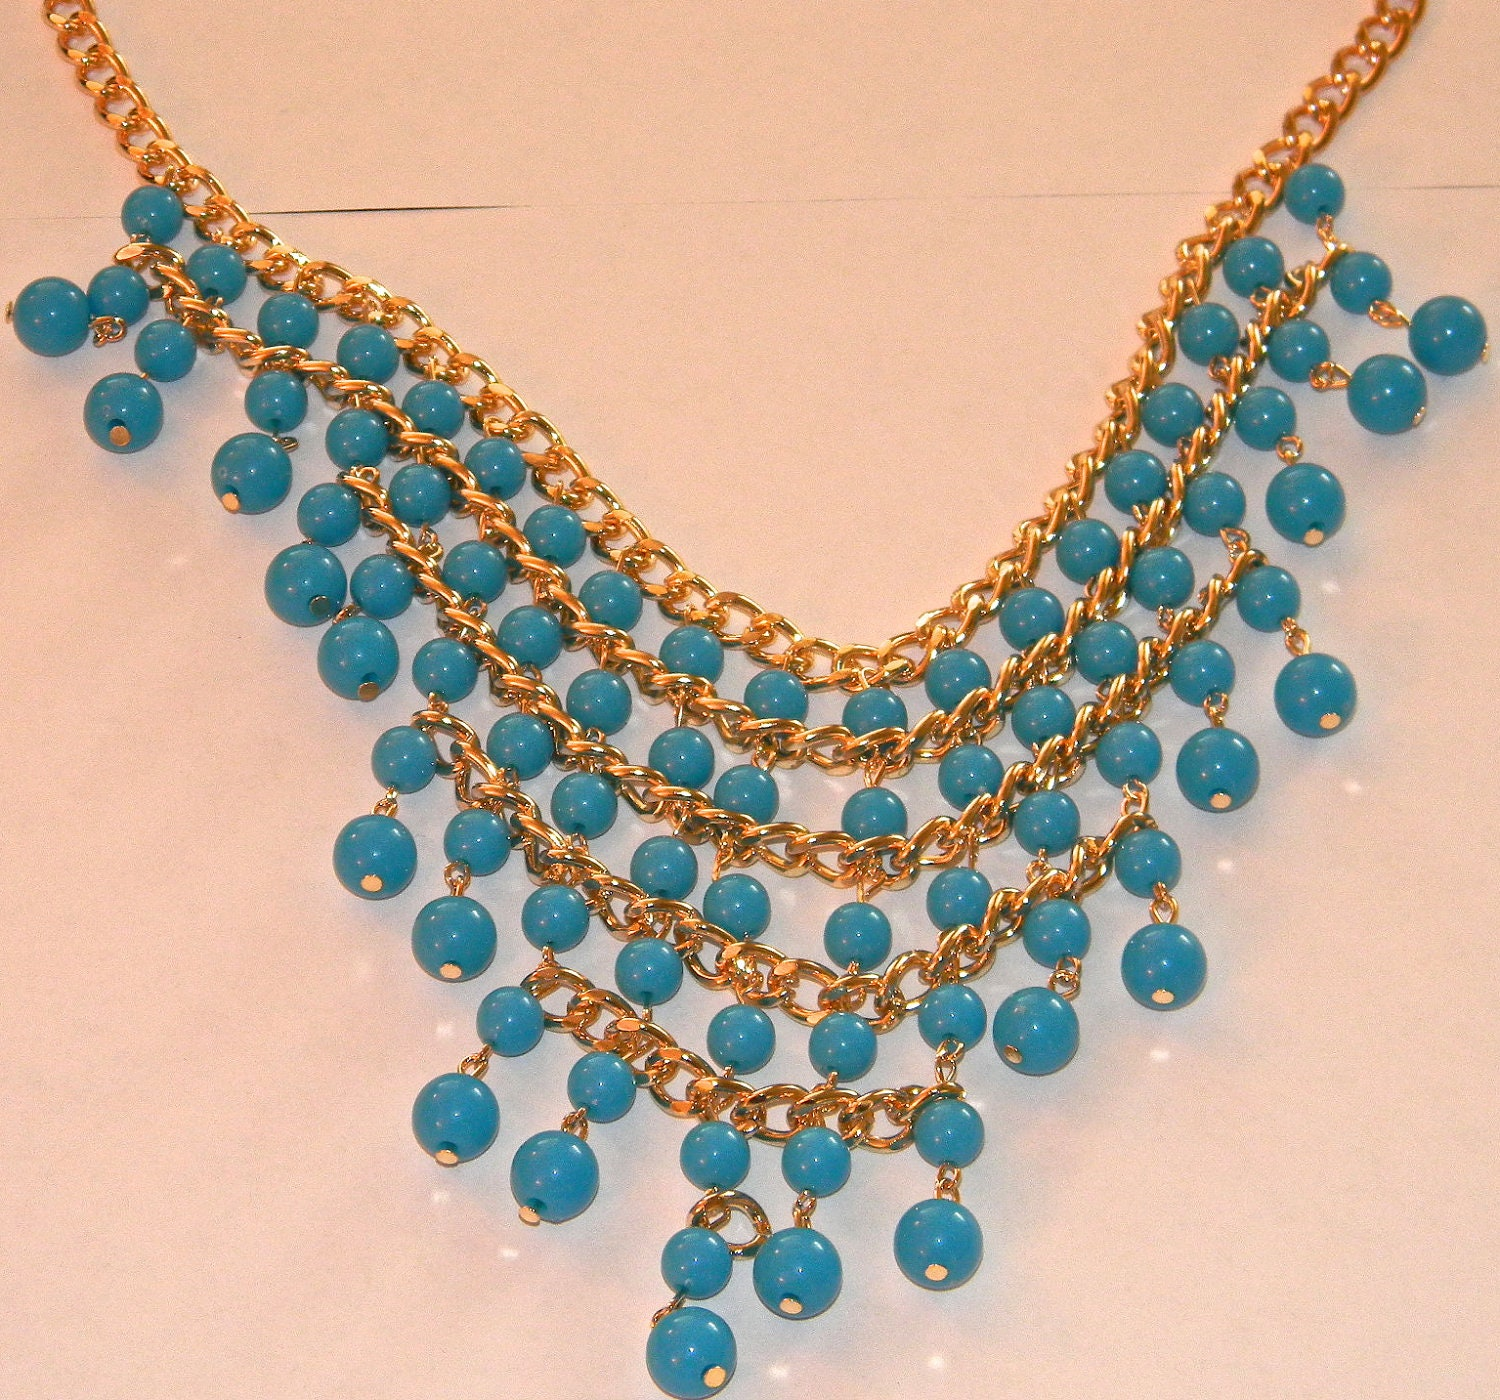 Beautiful Gold and Blue Bib Necklace